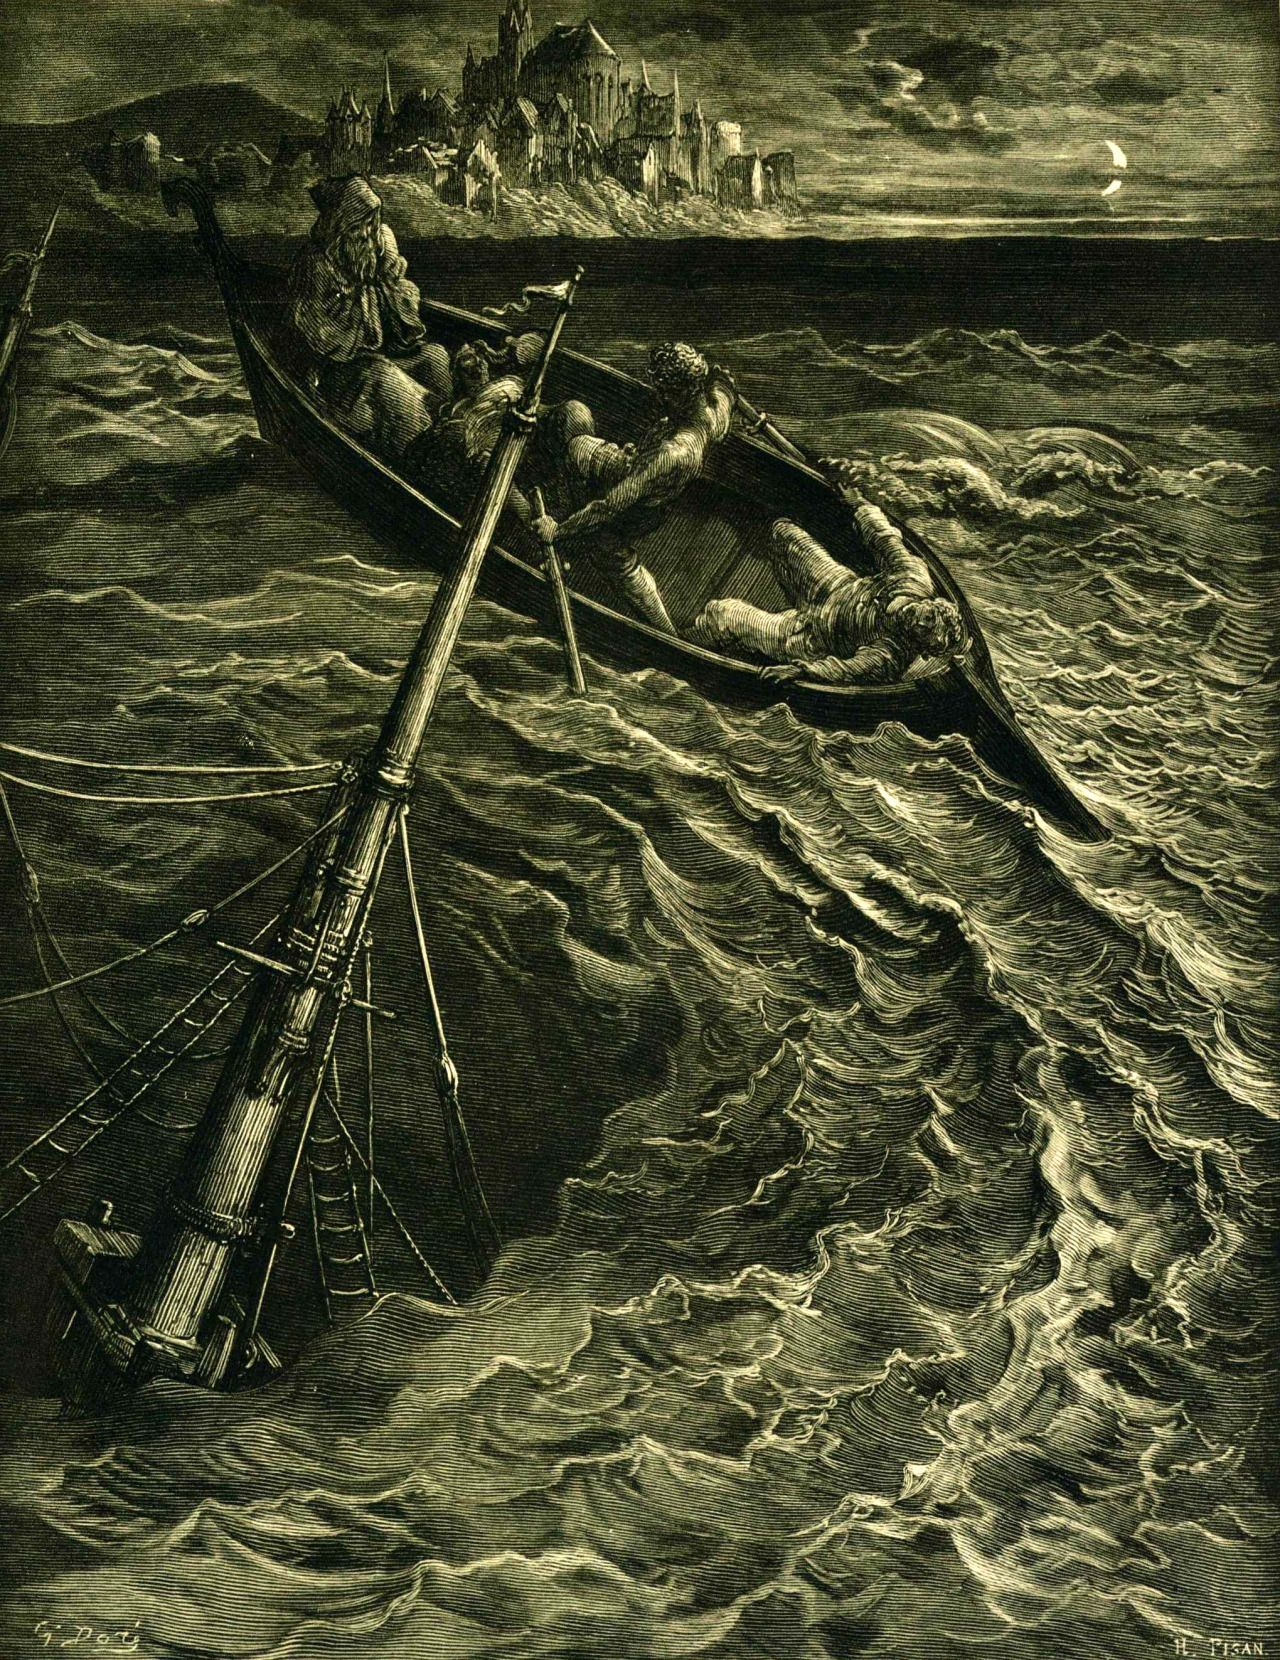 dor atilde gustave the rime of the ancient mariner by doratilde137 gustave 1832 1883 the rime of the ancient mariner by samuel